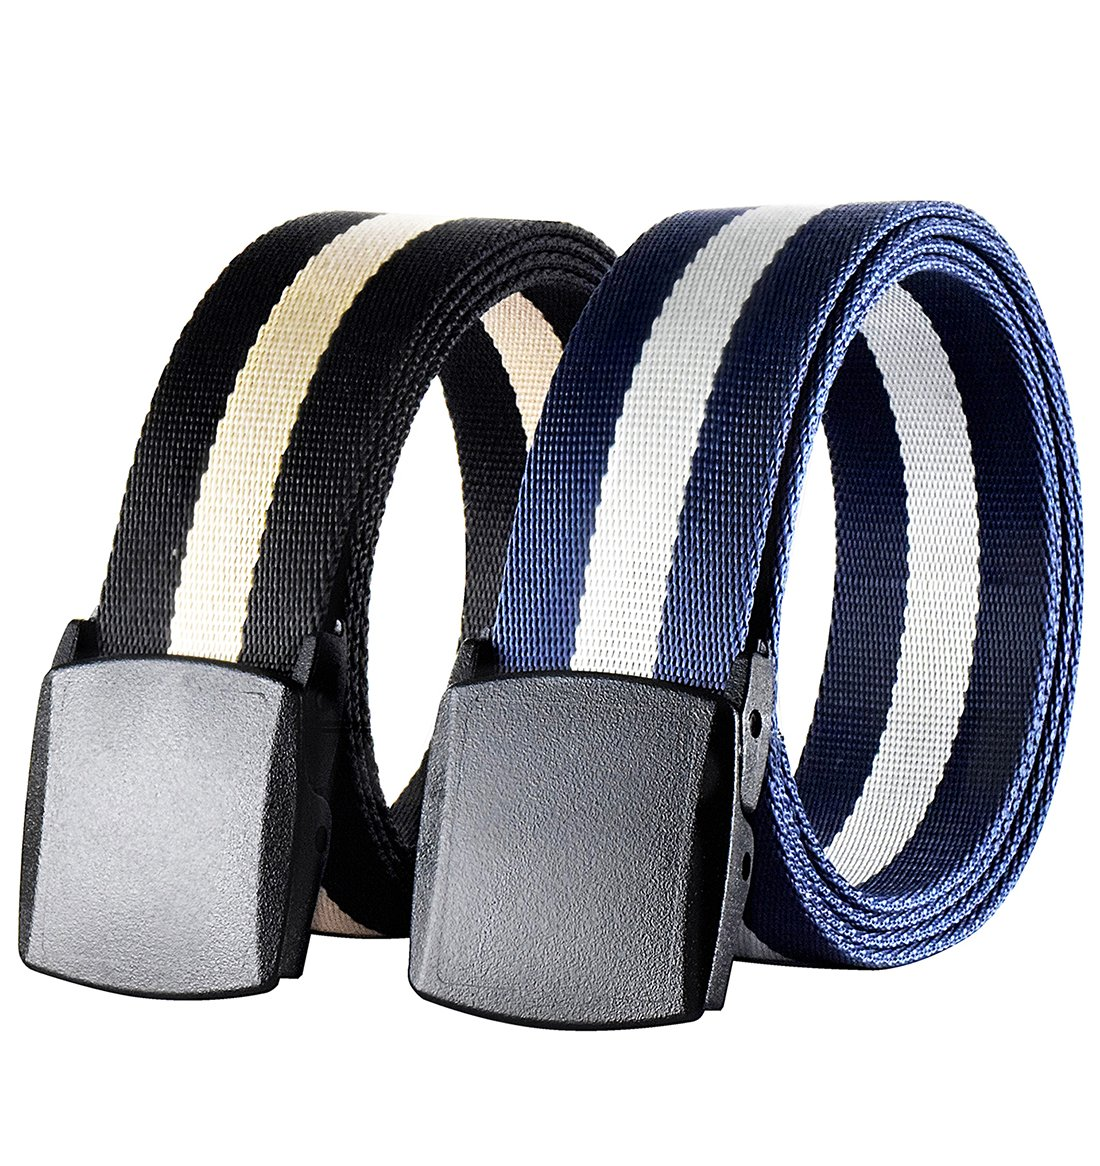 Outdoor Nylon Belts Military Tactical Webbing - No Metal Buckle,2 Pack